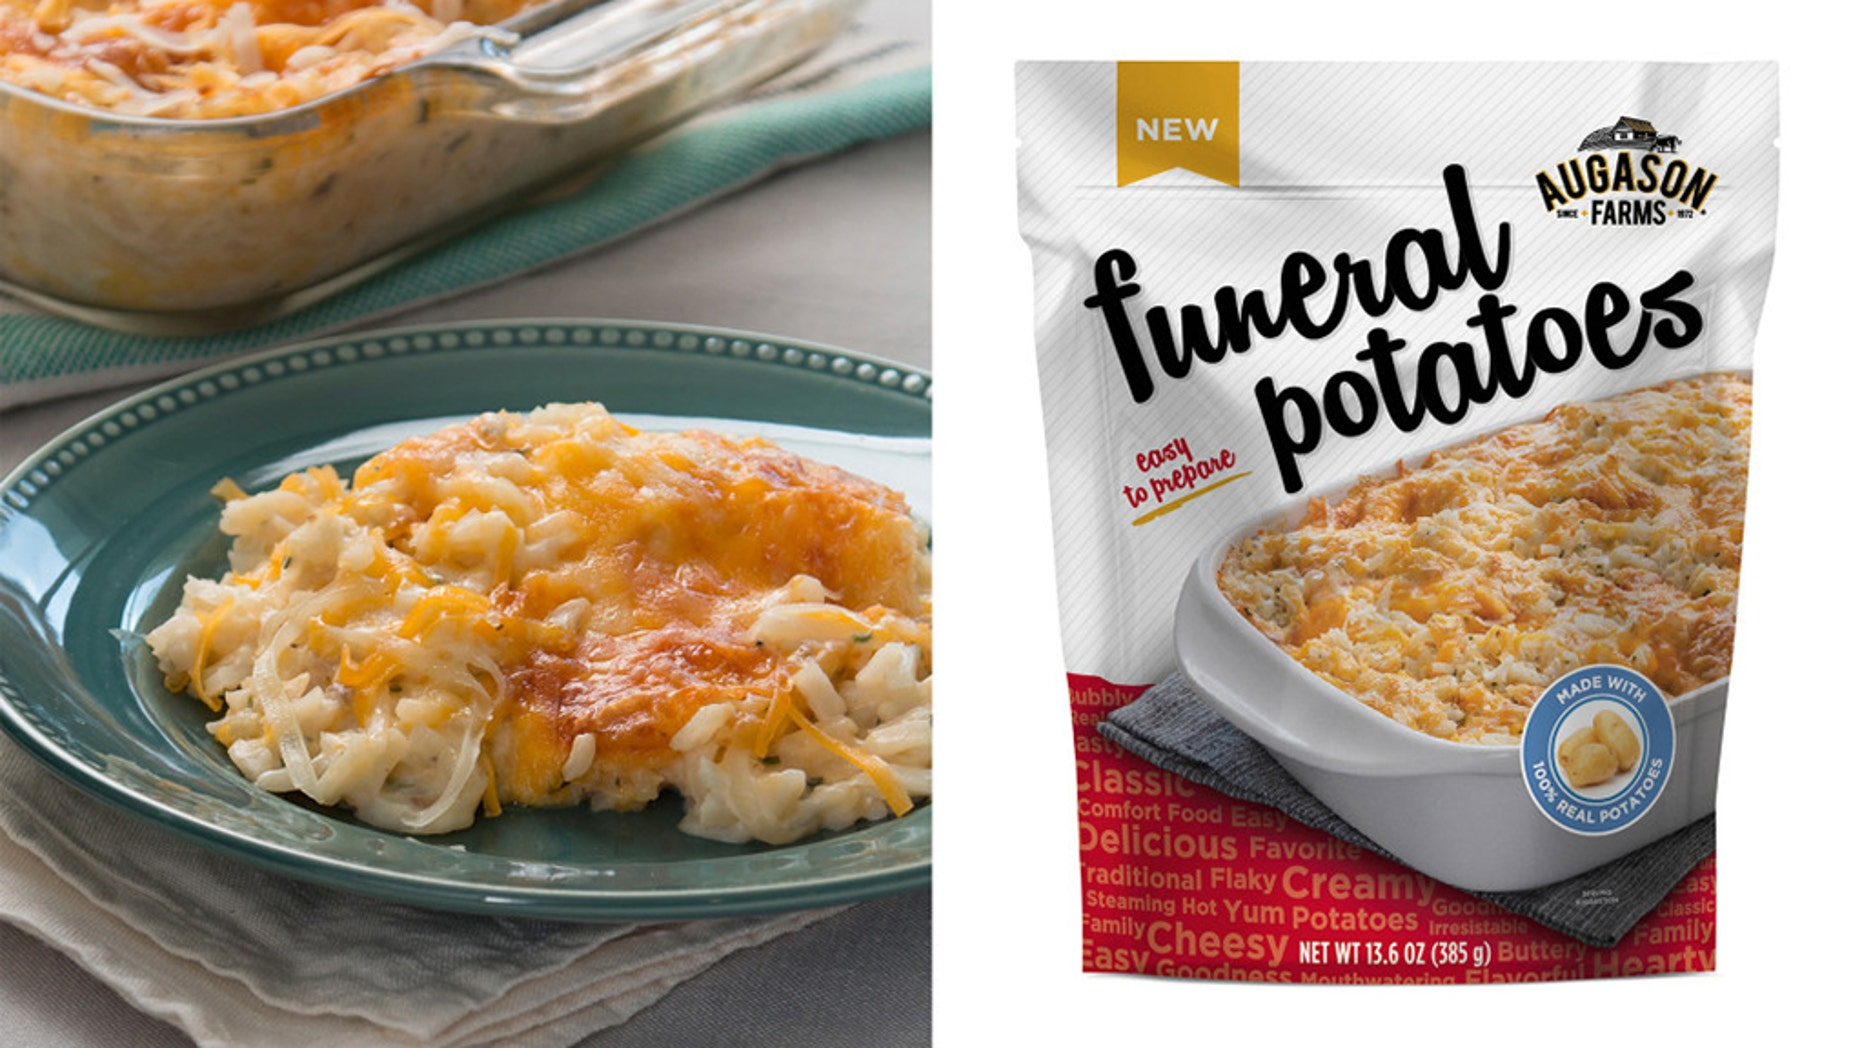 The Internet is freaking out over Walmart's 'Funeral Potatoes'